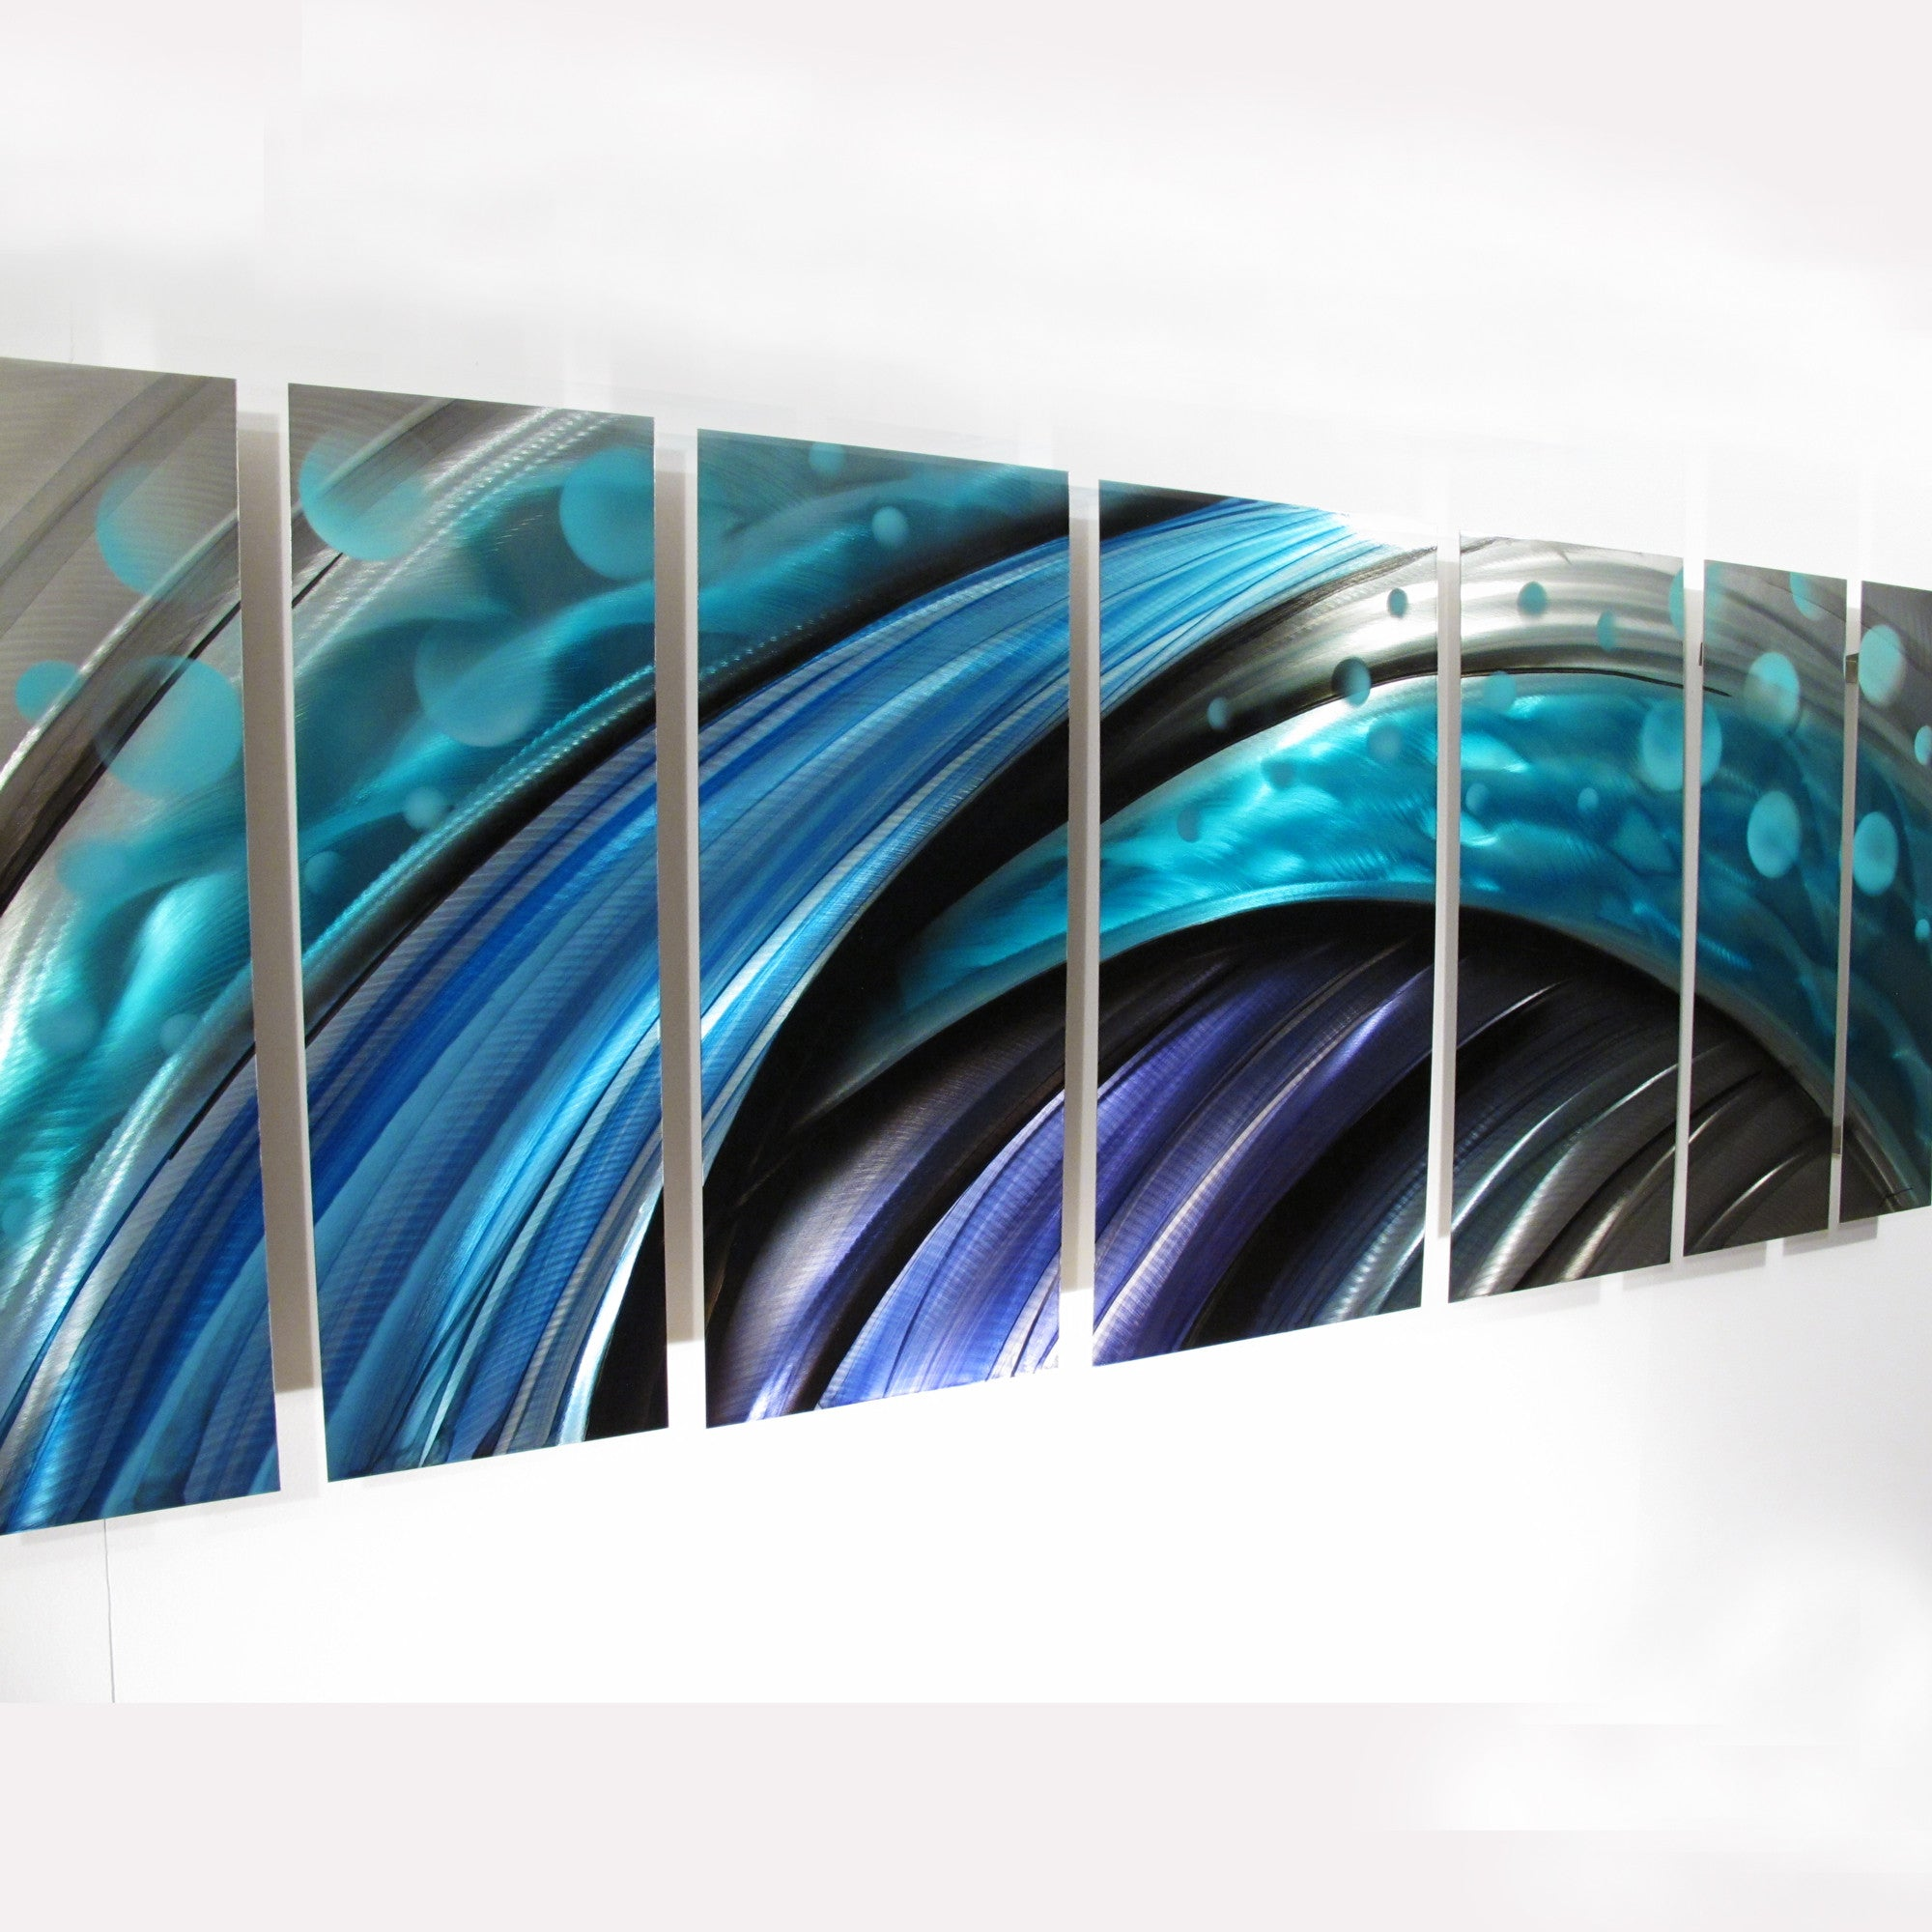 "Contemporary Metal Wall Art typhoon"" large modern abstract metal wall art sculpture blue - dv8"